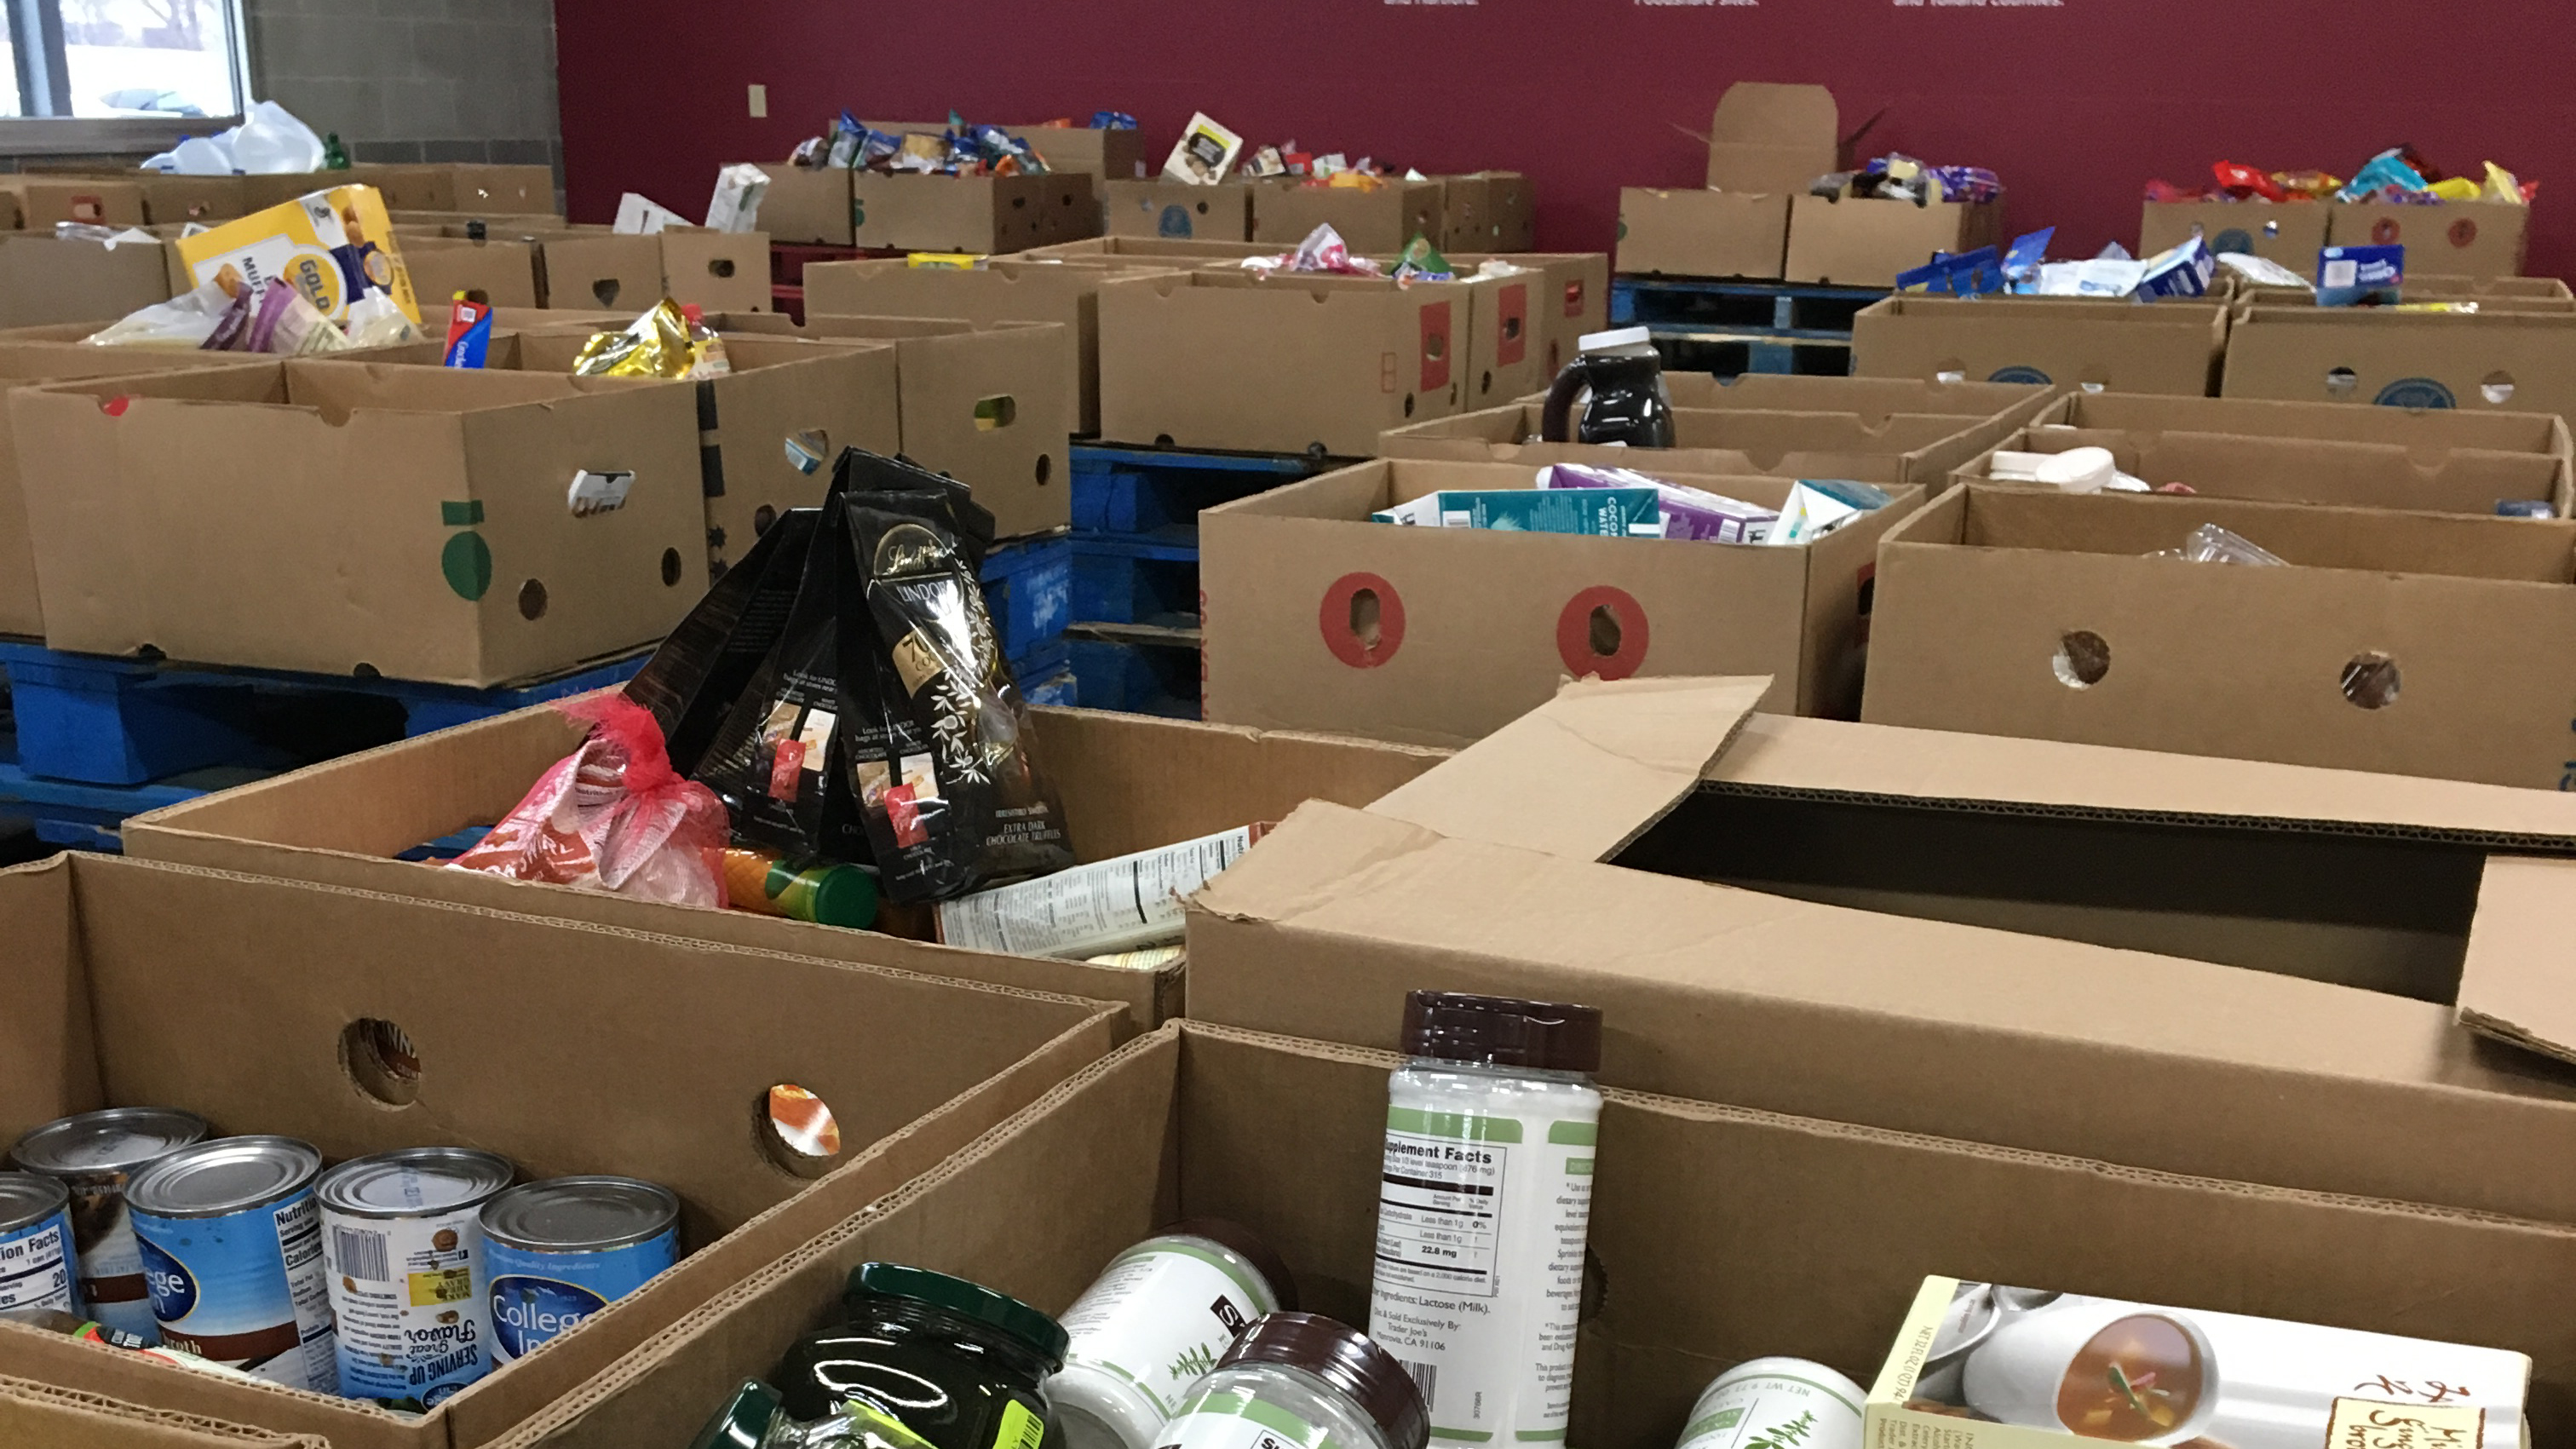 Foodshare, a food bank serving Hartford and Tolland counties, provided 14 million meals last year.